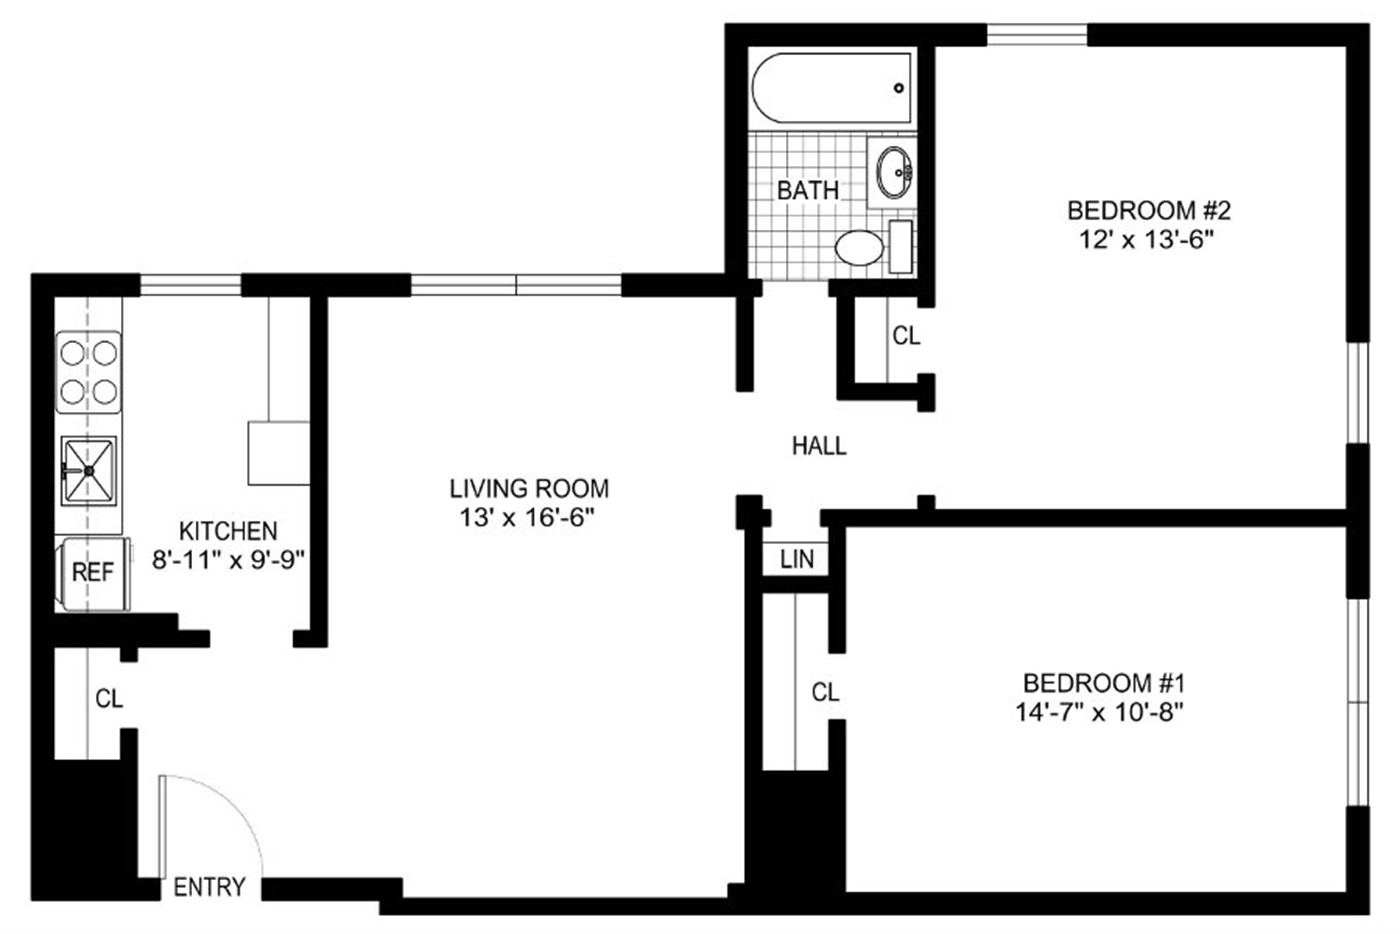 Floor Plan Templates Printable Free Sample Floor Plan